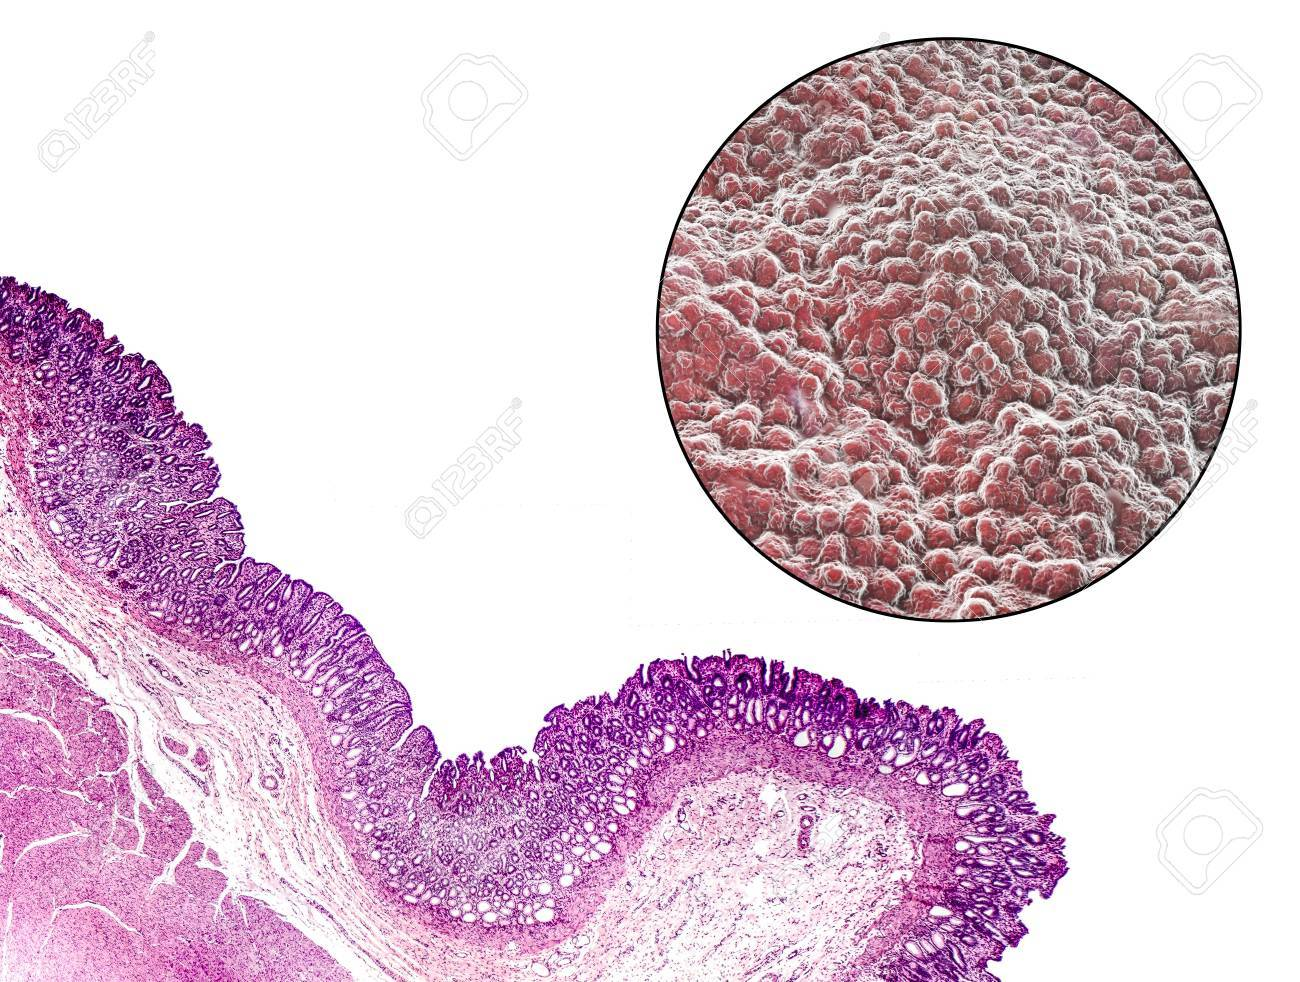 Pyloric Mucosa Light Micrograph And 3d Illustration Which Show